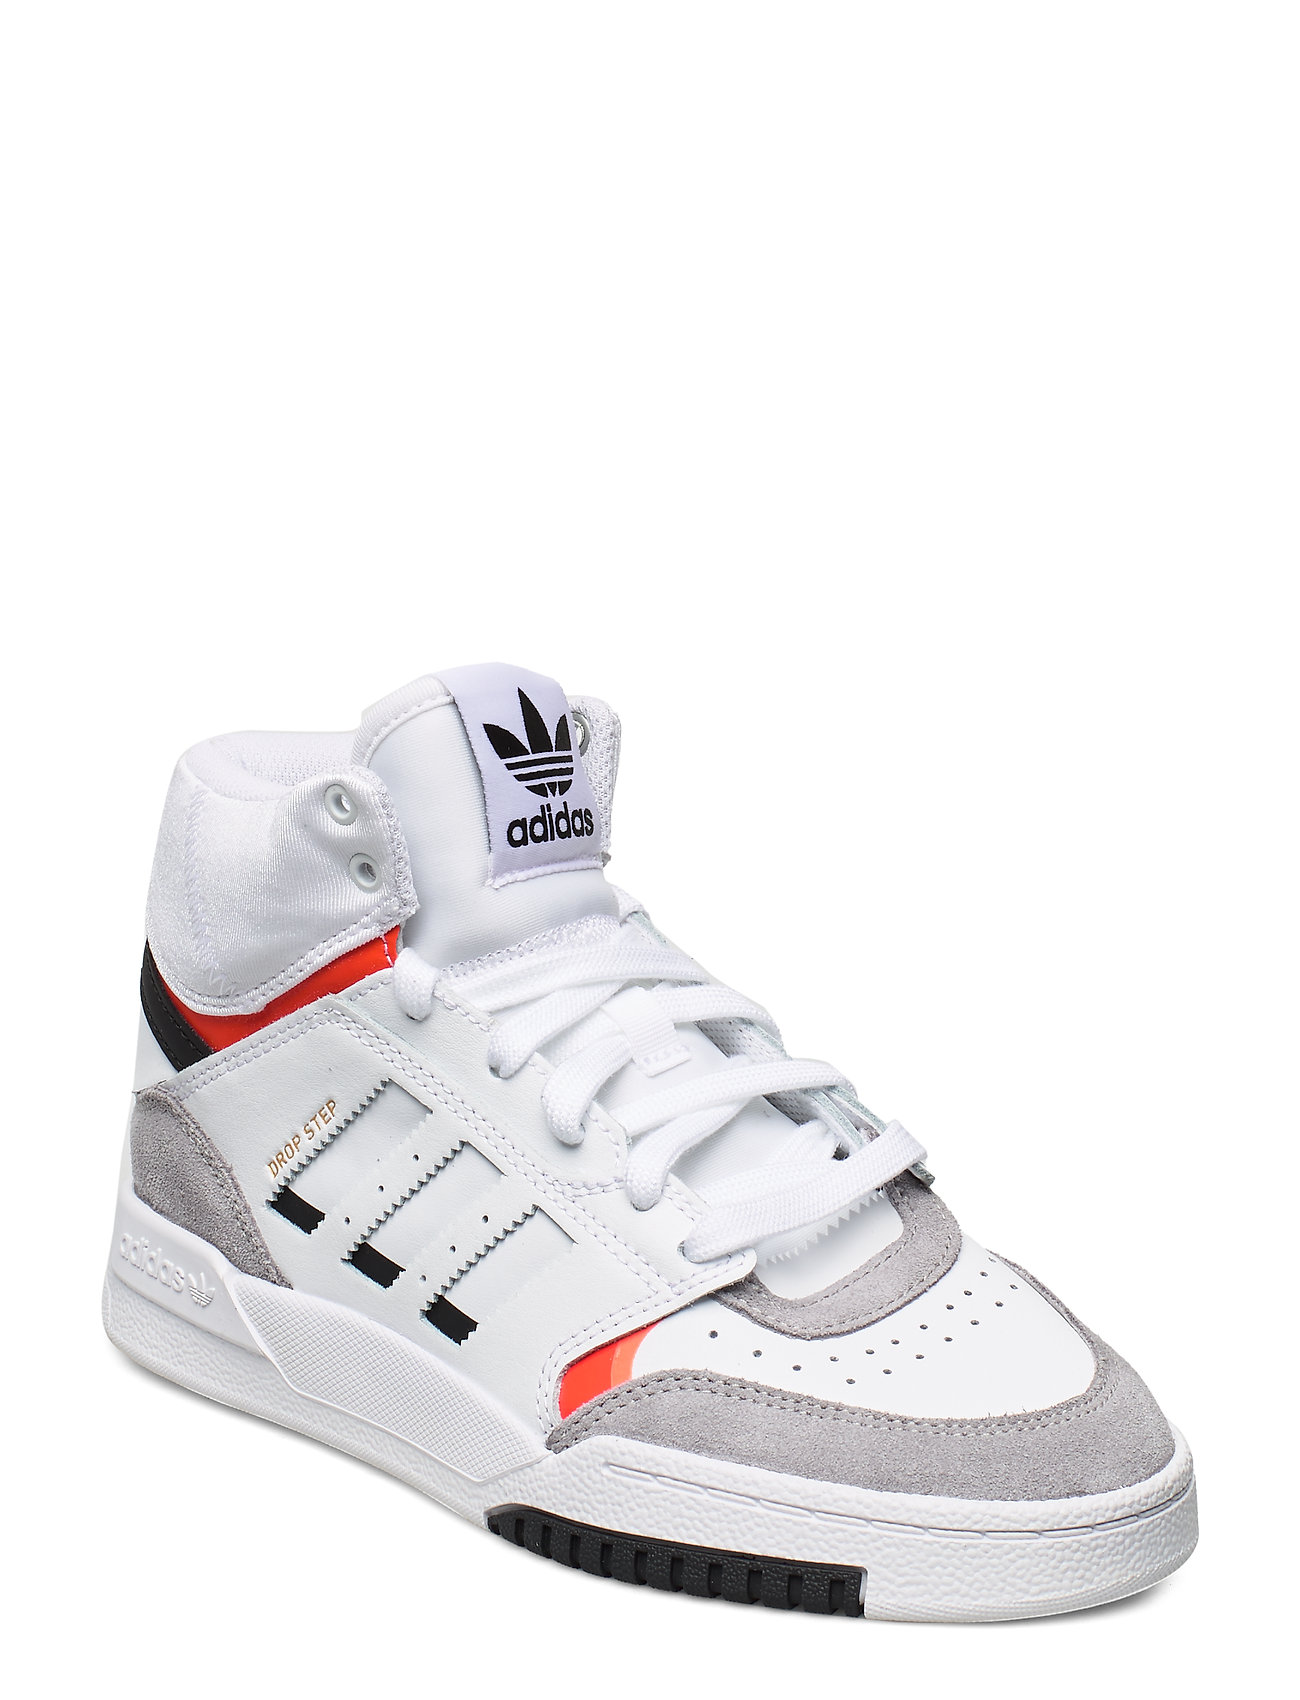 adidas Originals DROP STEP J - FTWWHT/LGRANI/SOLRED